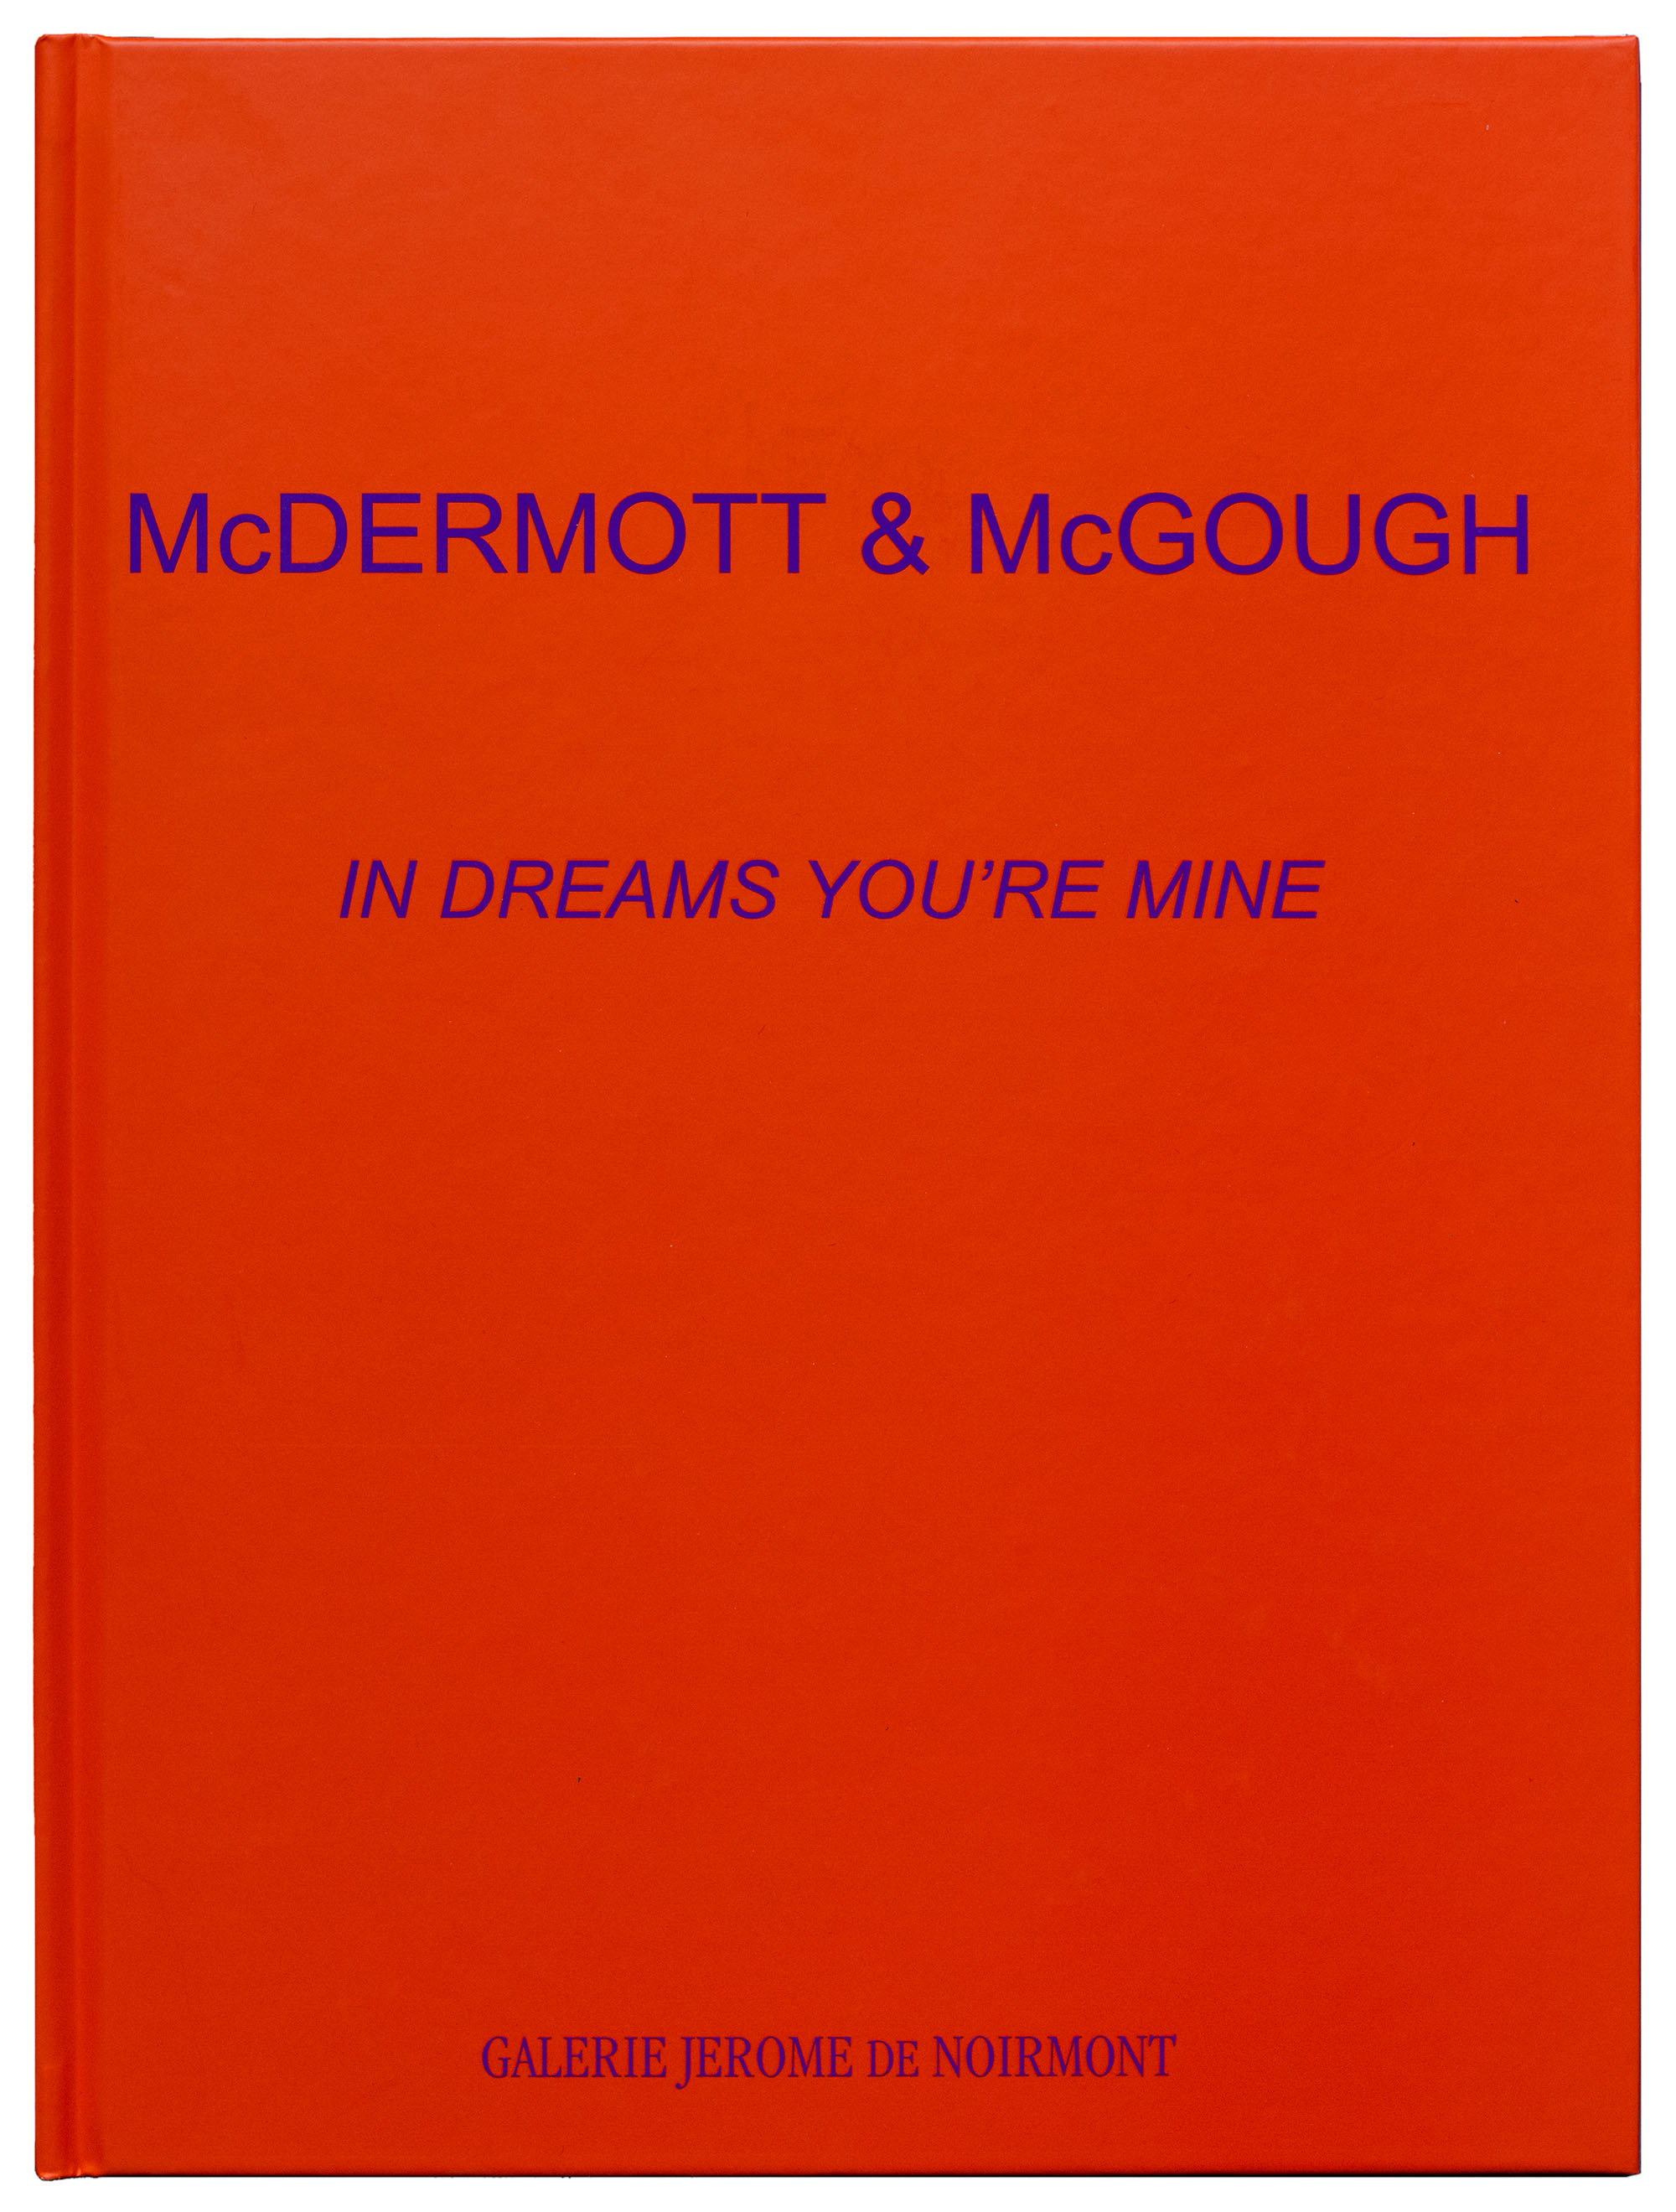 McDermott & McGough/Ed. de Noirmont